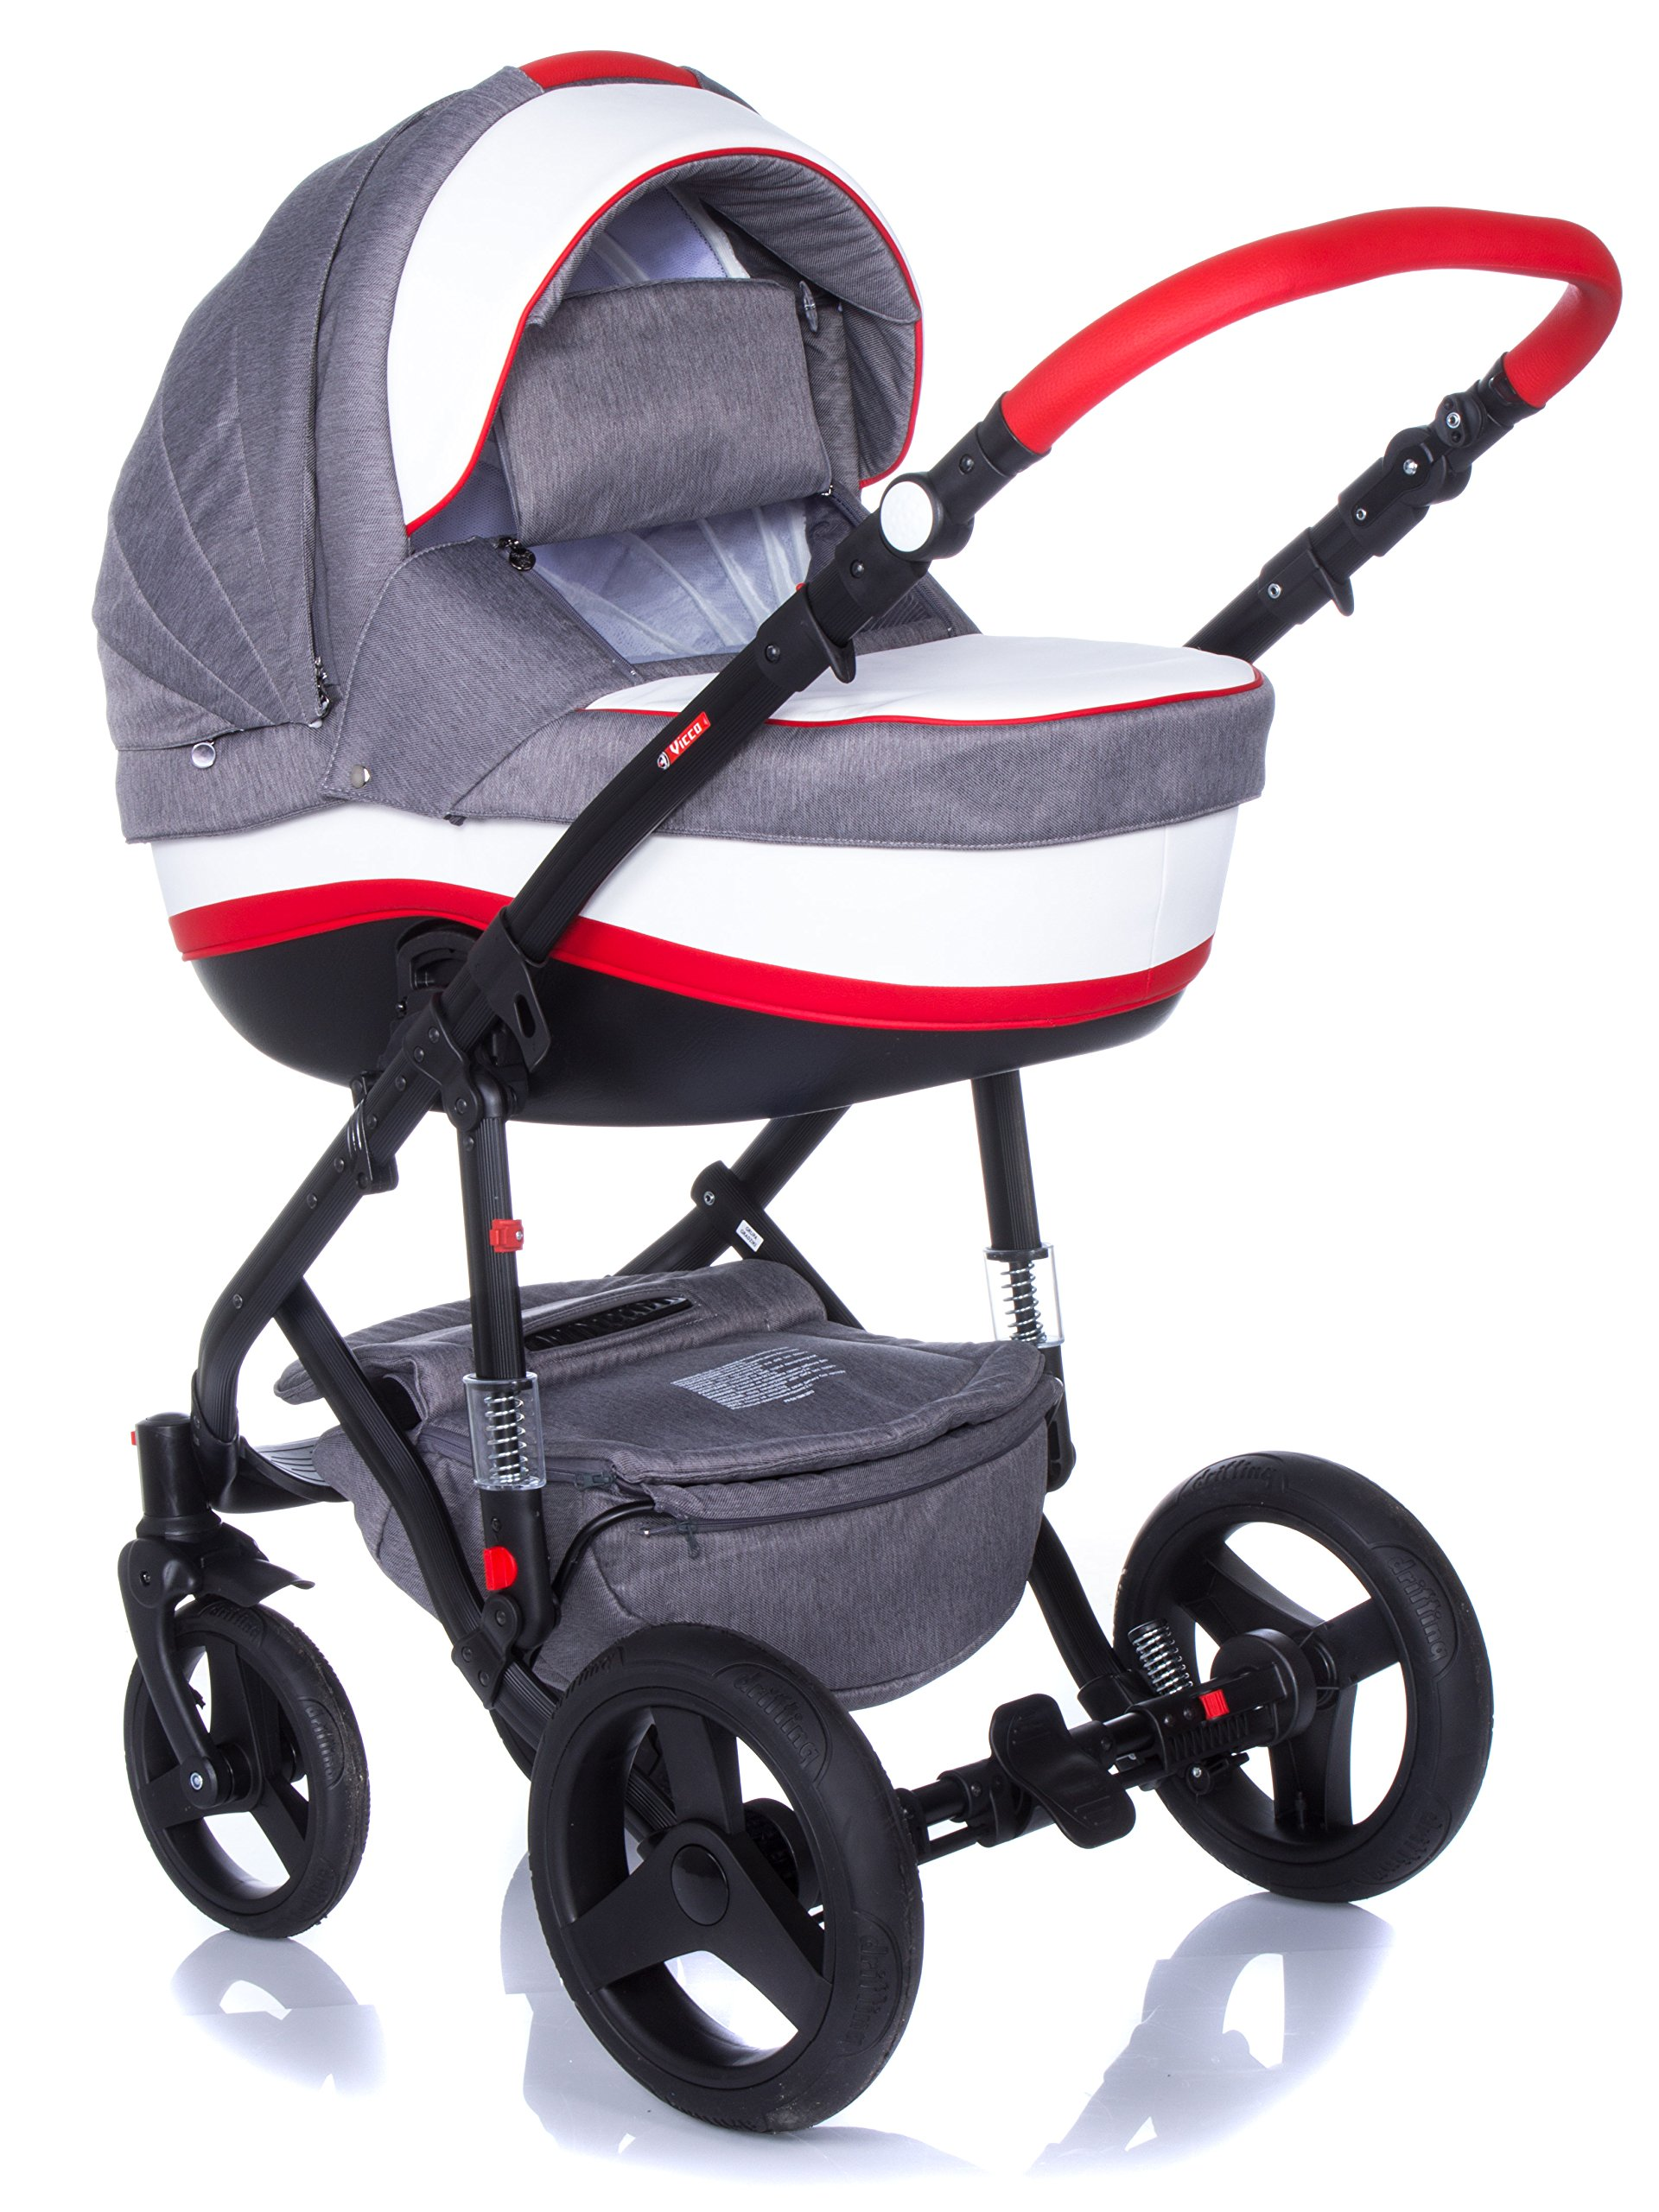 Baby Pram Pushchair Stroller Buggy Travel System Set Adamex Vicco + Baby Bag + Rain Cover + Mosquito Net + (2in1, R2 Red Graphite) Adamex Lockable swivel wheels and lockable side suspension system Light alluminium chassis with gel wheels 50% Ecco Leather and 50% Polyester shell 3